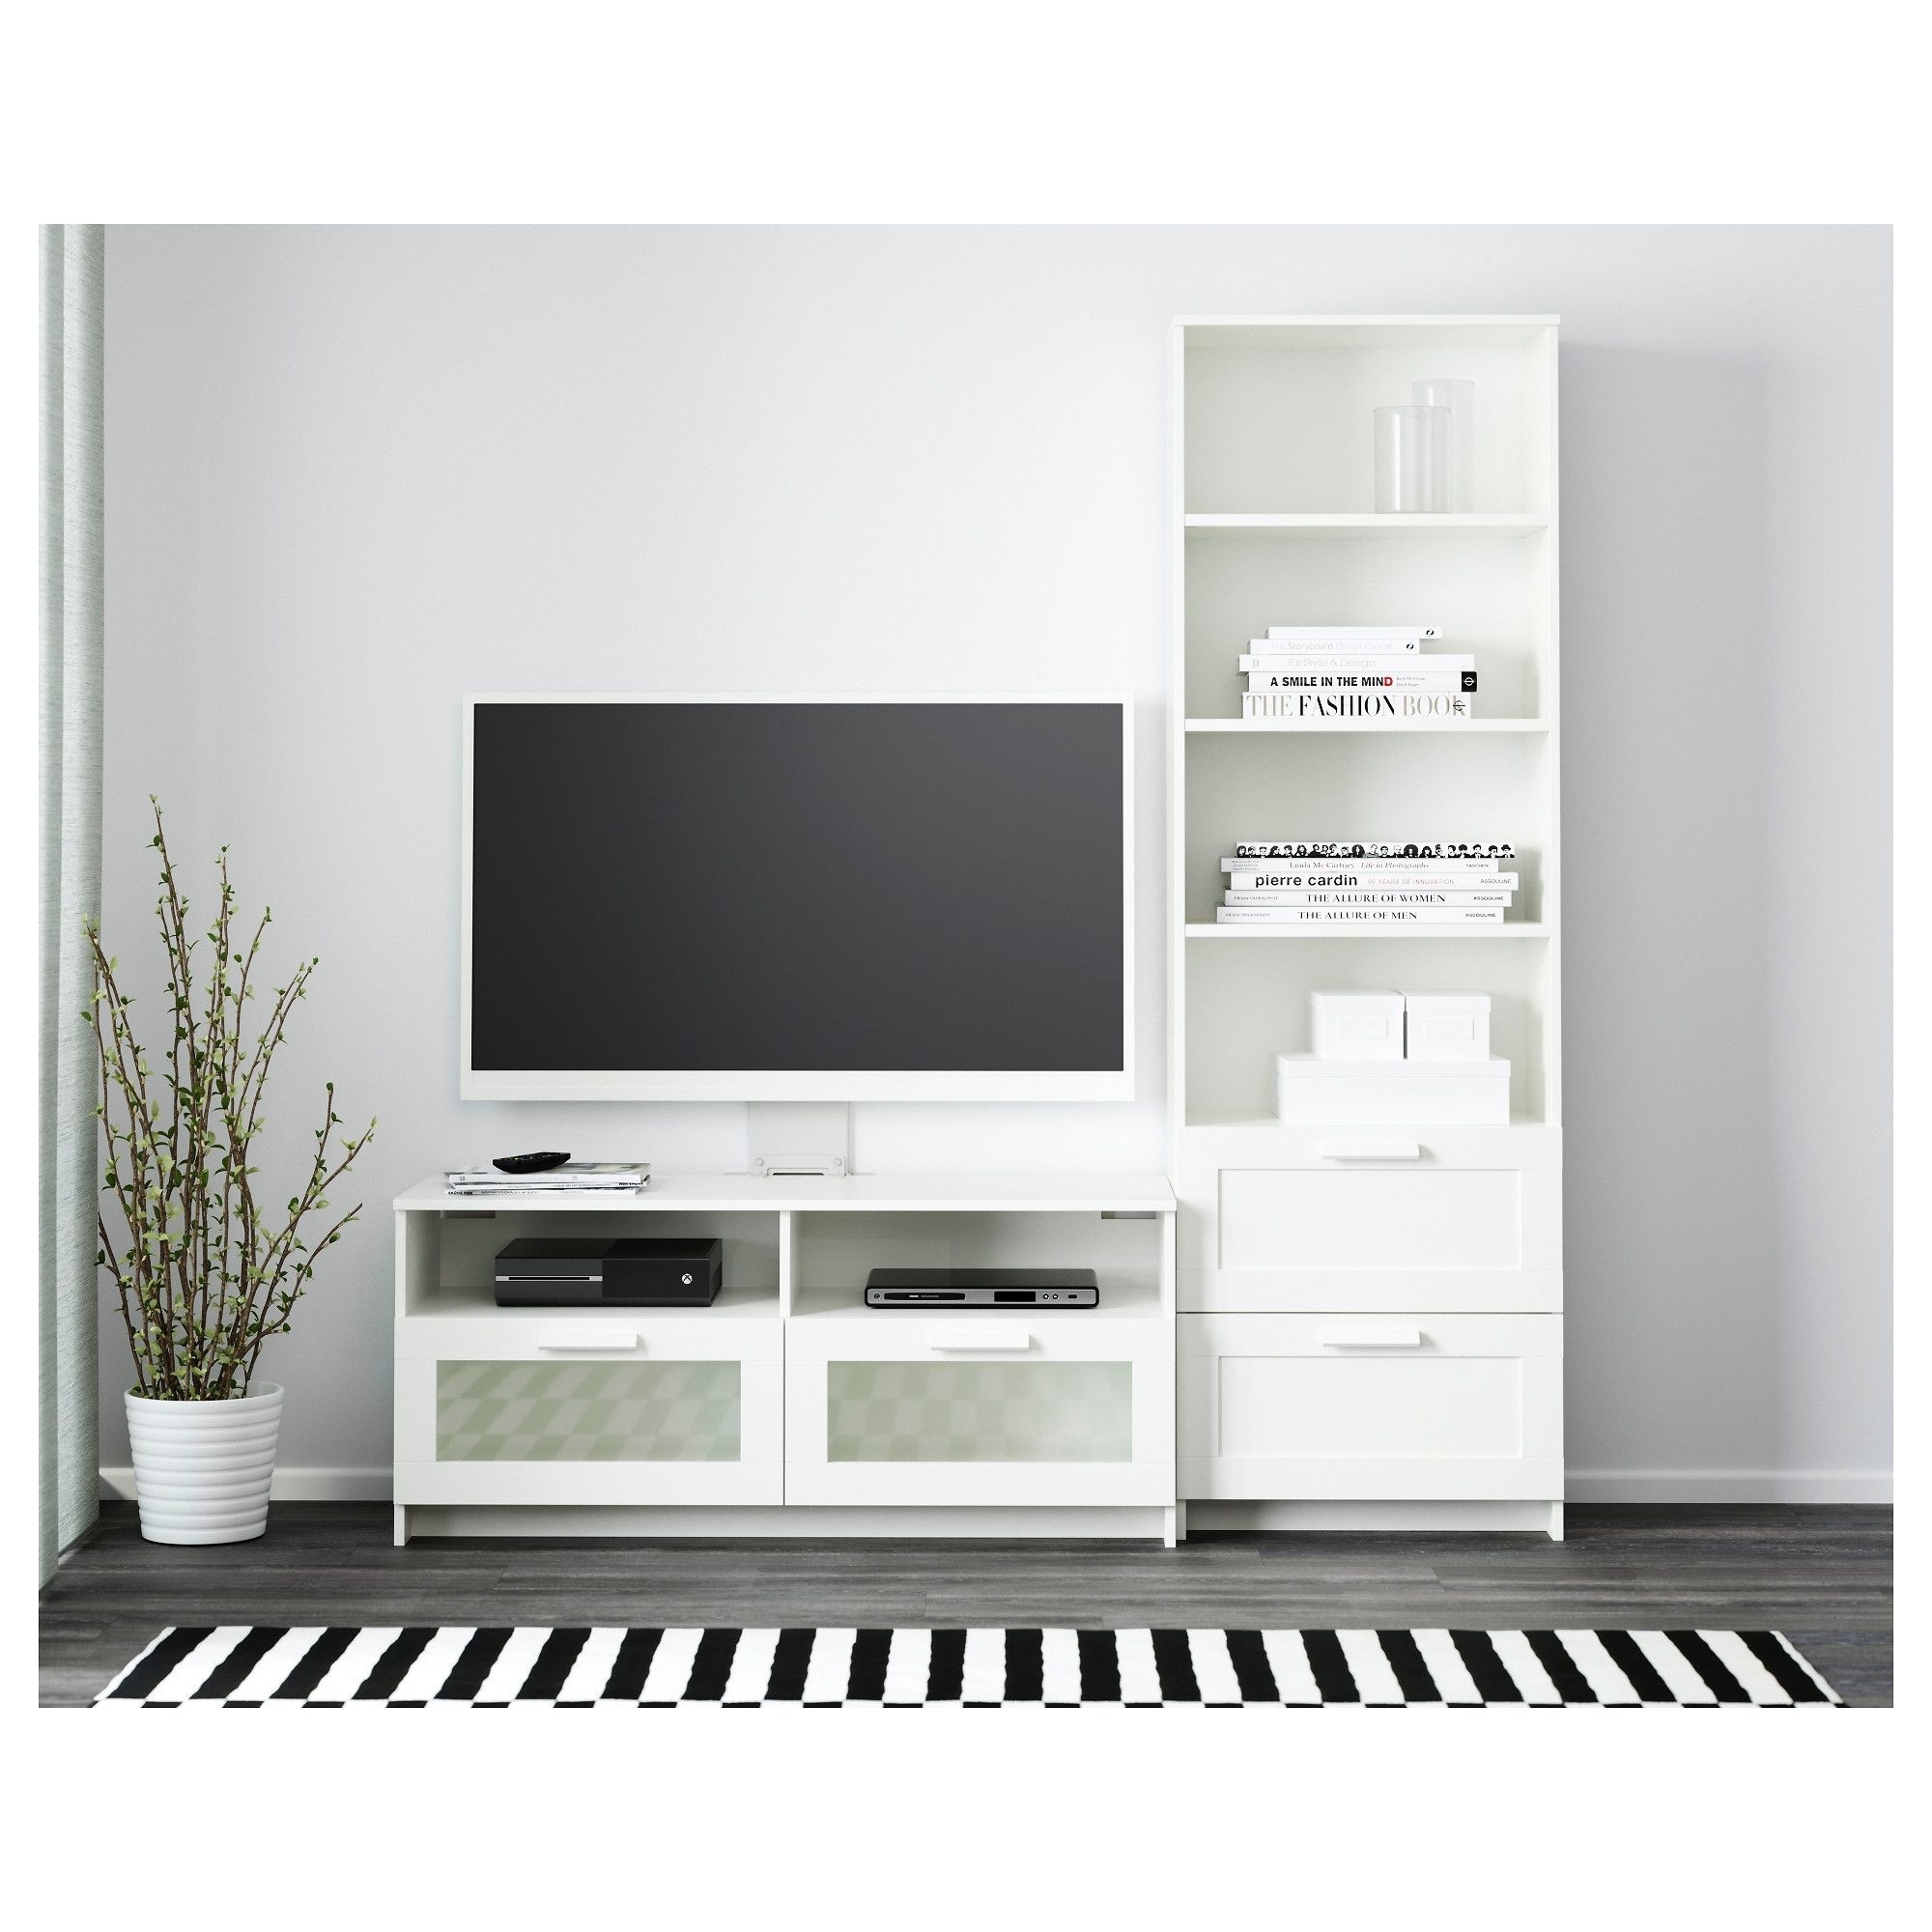 Ikea – Brimnes Tv Storage Combination White In 2018 | ชั้นวางทีวี In 2017 Combs 5 Piece 48 Inch Extension Dining Sets With Pearson White Chairs (Image 11 of 20)